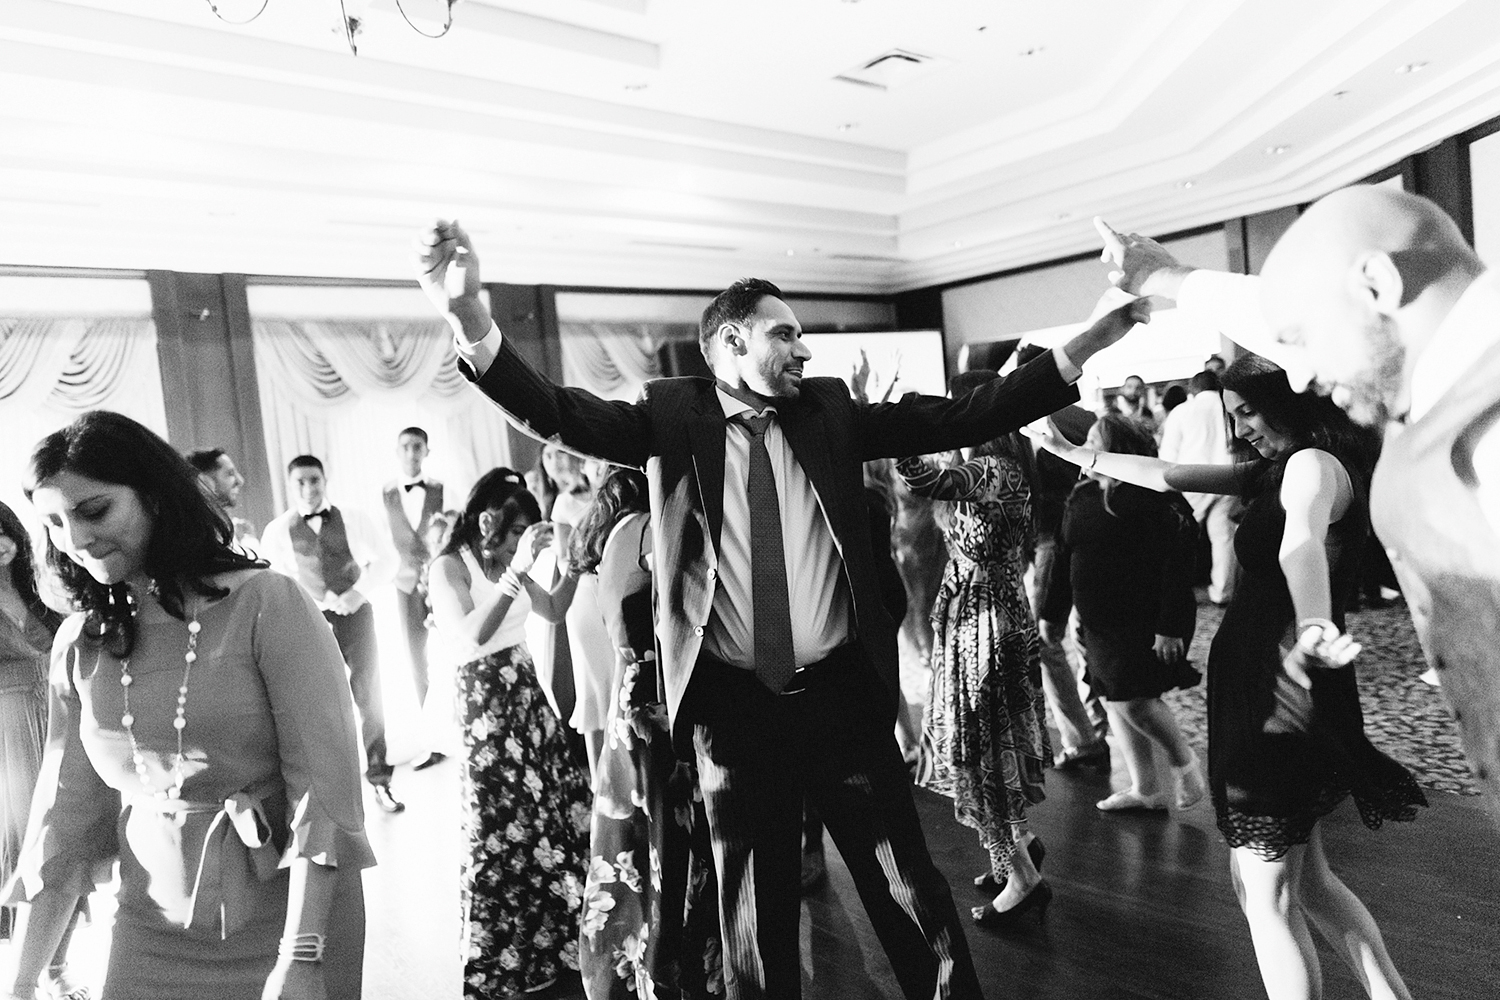 Toronto's-Best-Film-Wedding-Photography-3B-Photography-Multicultural-wedding-day-two-Hamilton-Grimsby-Toronto-Wedding-documentary-photojournalistic-photojournalism-prices-reception-guests-dancing-partying.jpg